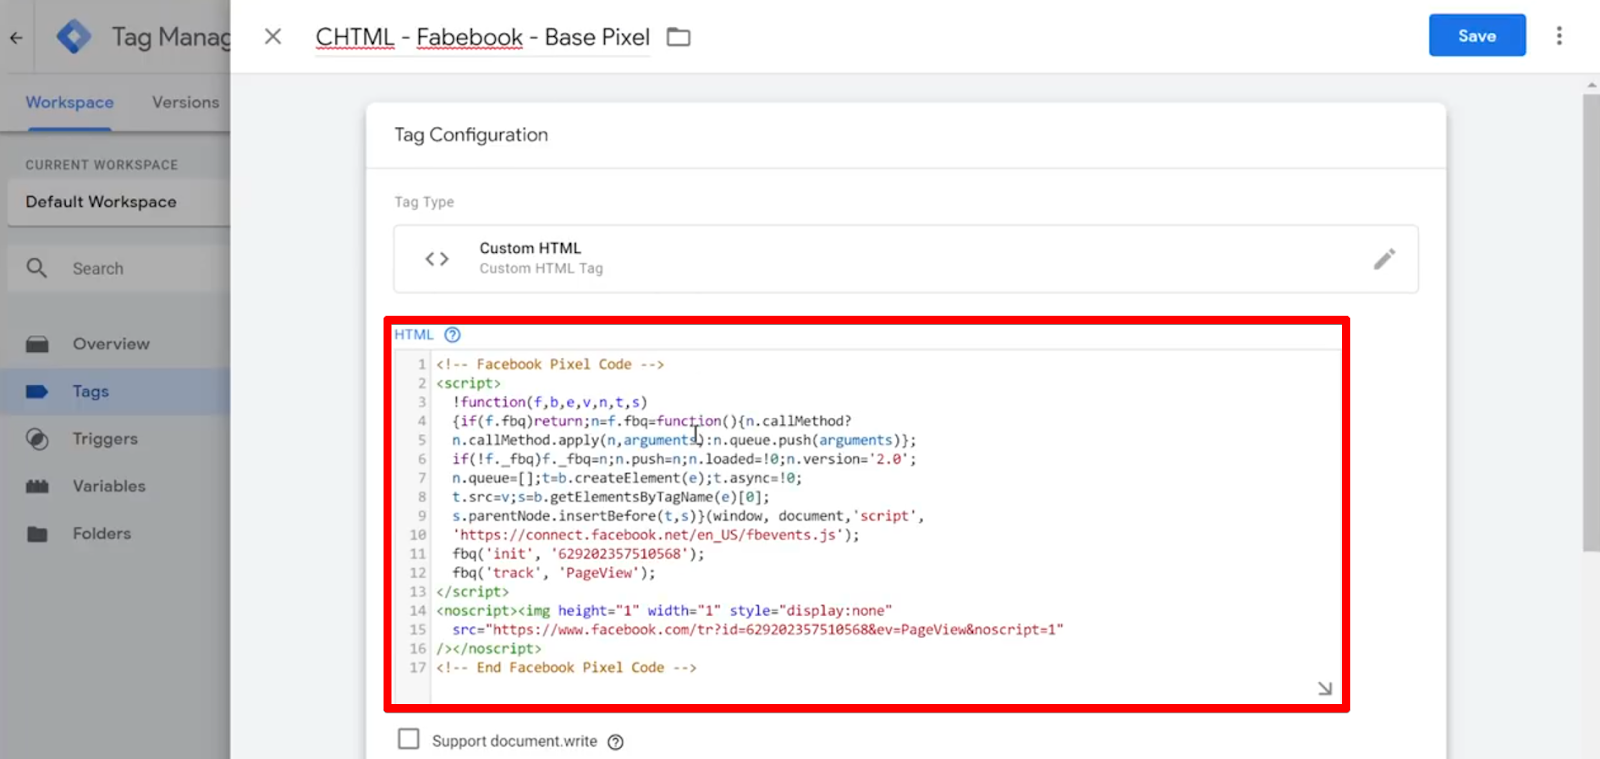 Paste the pixel code from the Facebook Pixel into the HTML field of your new Tag